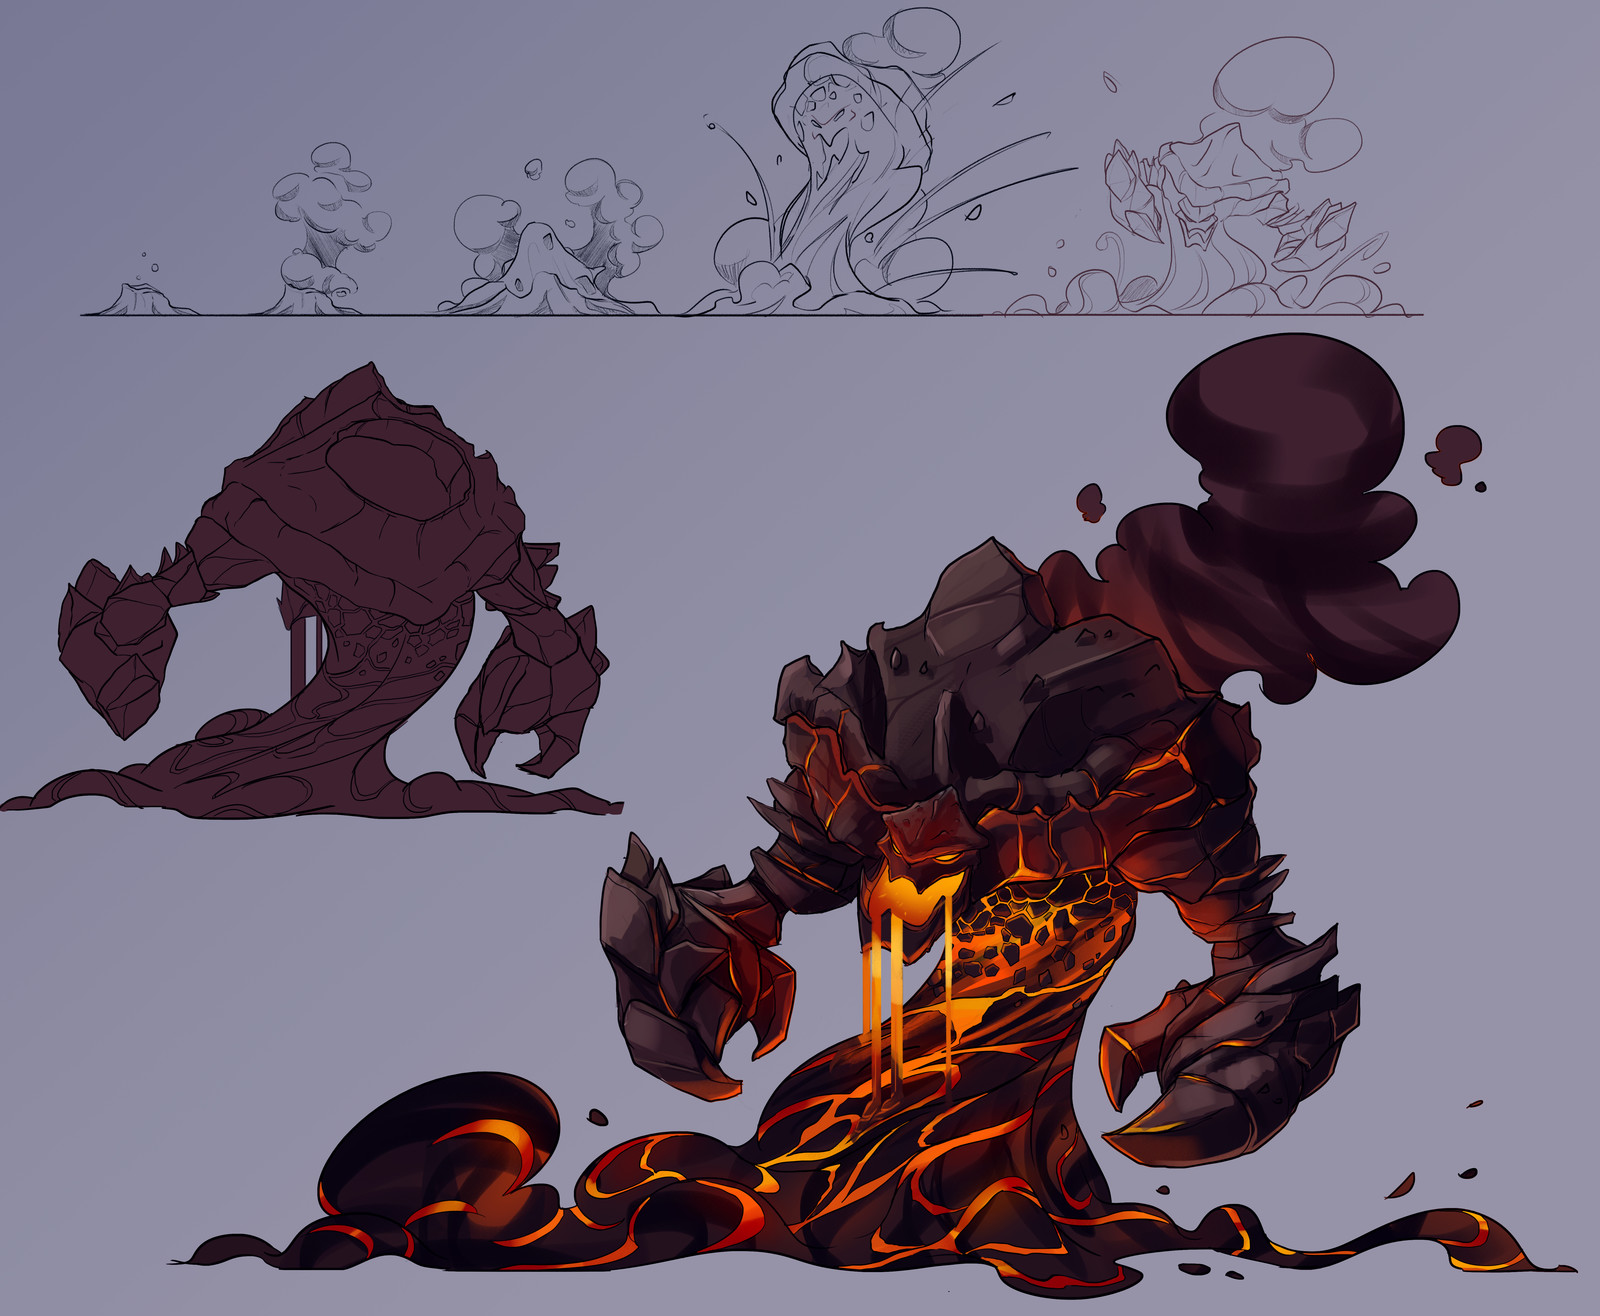 Troll character designs